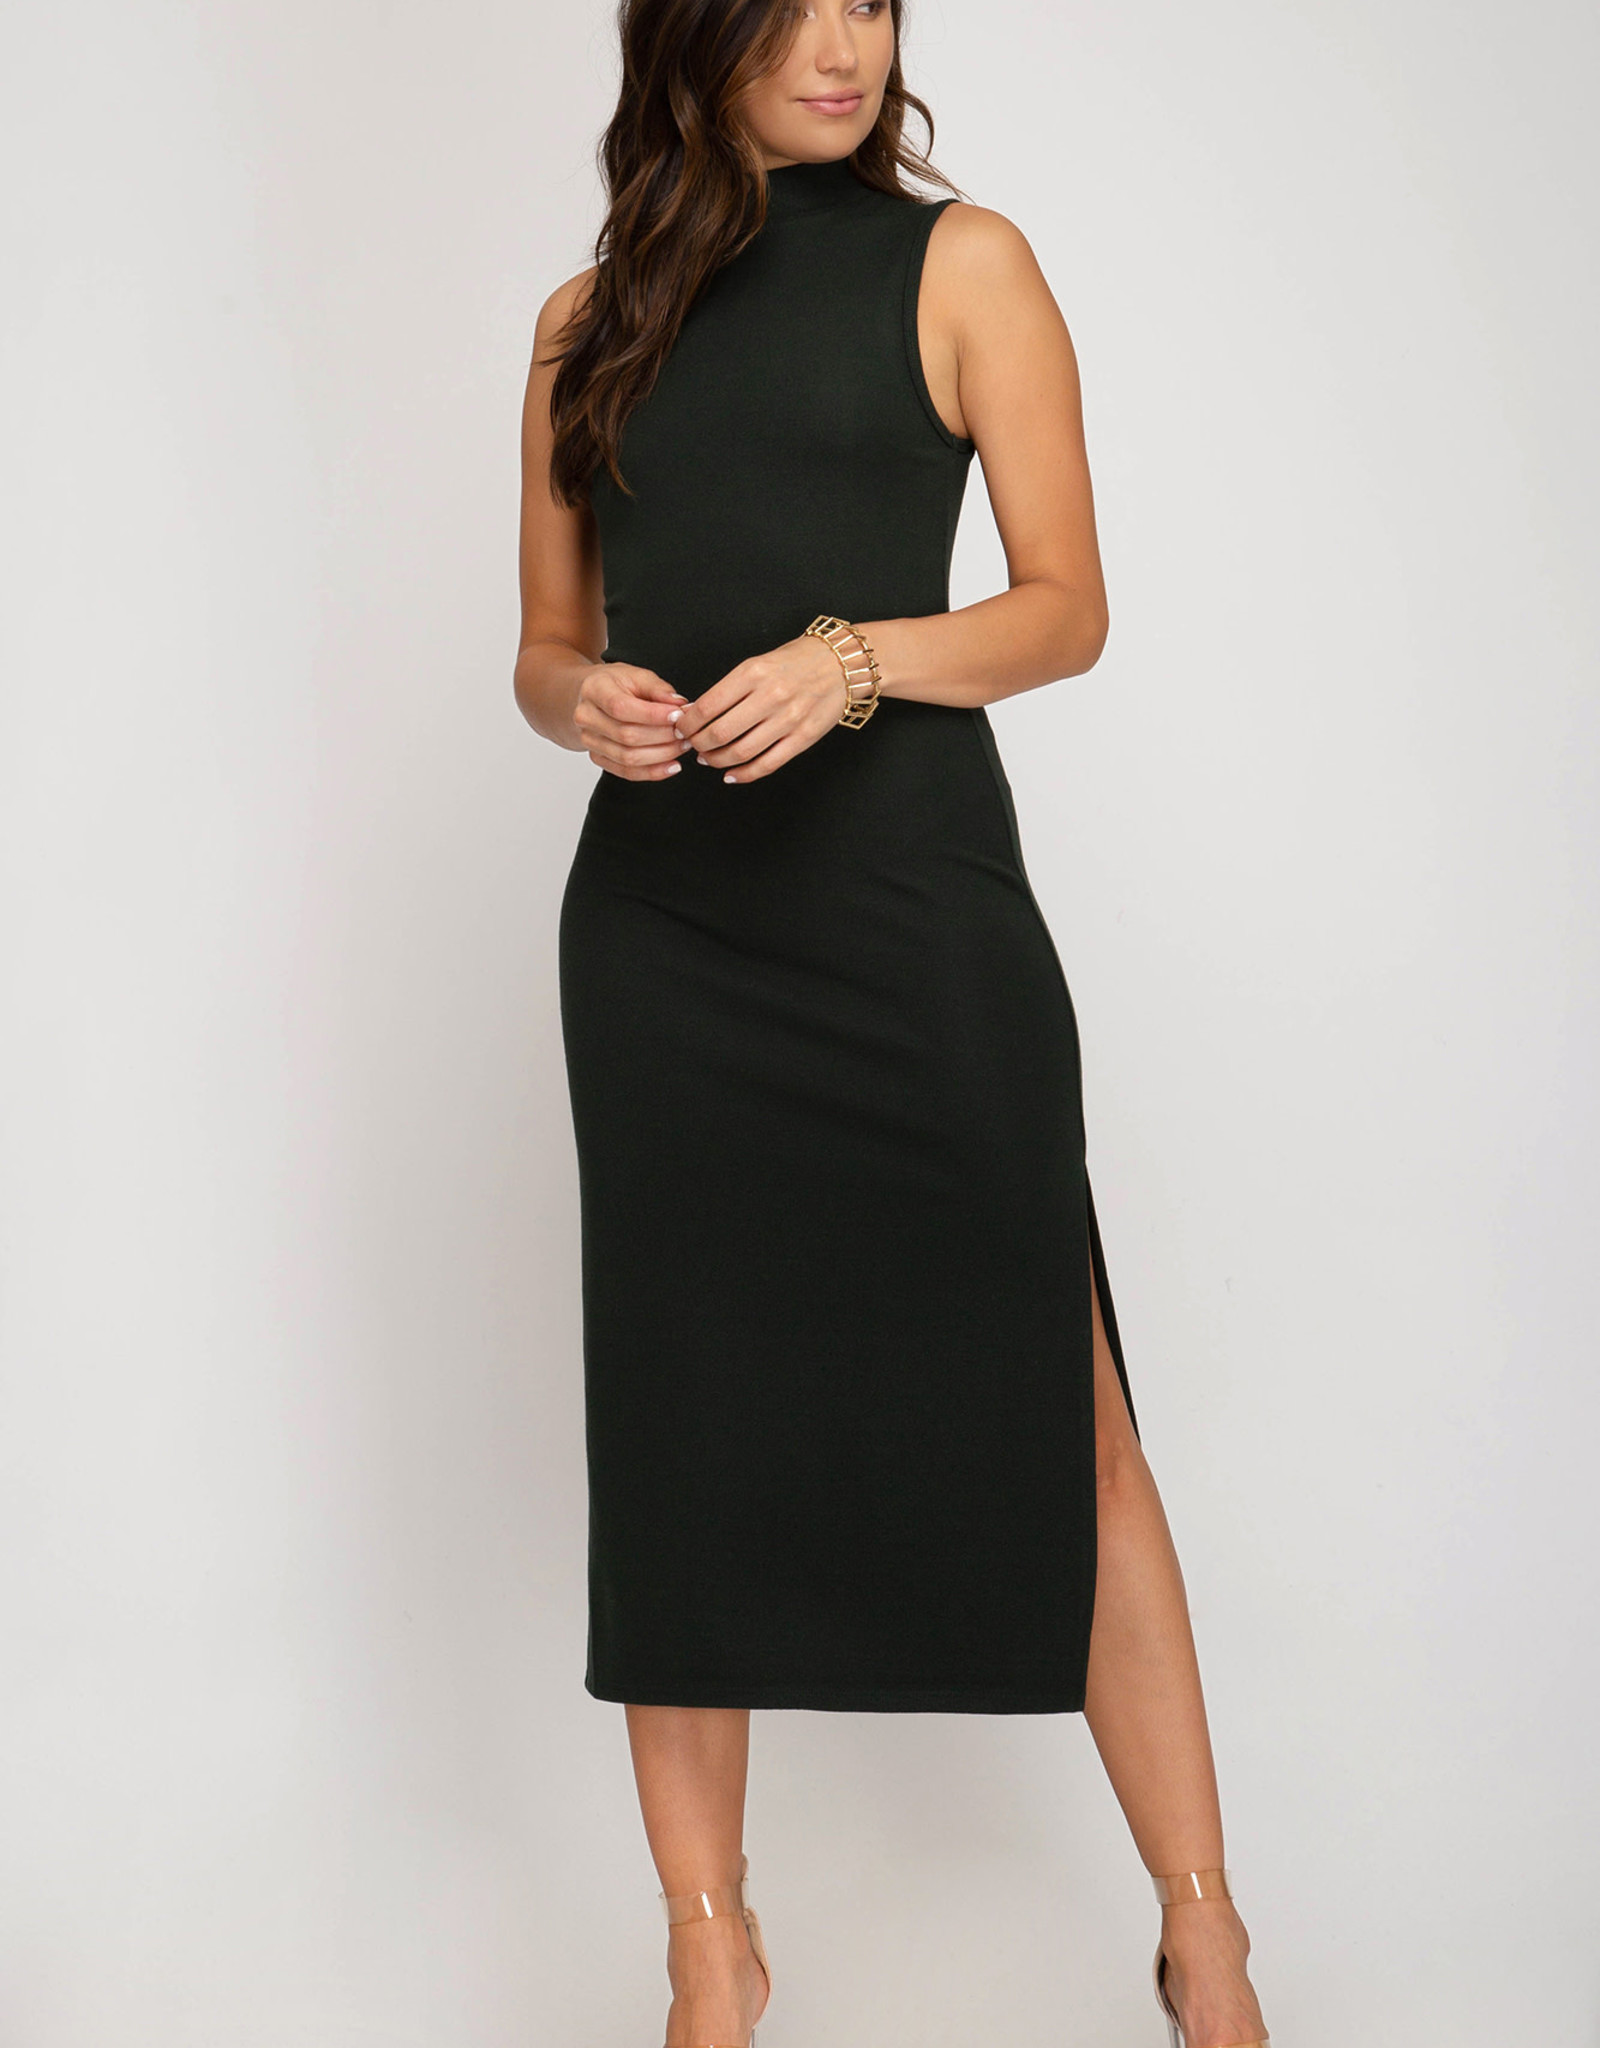 LeBLANC finds FITTED Mock Neck Slit Dress